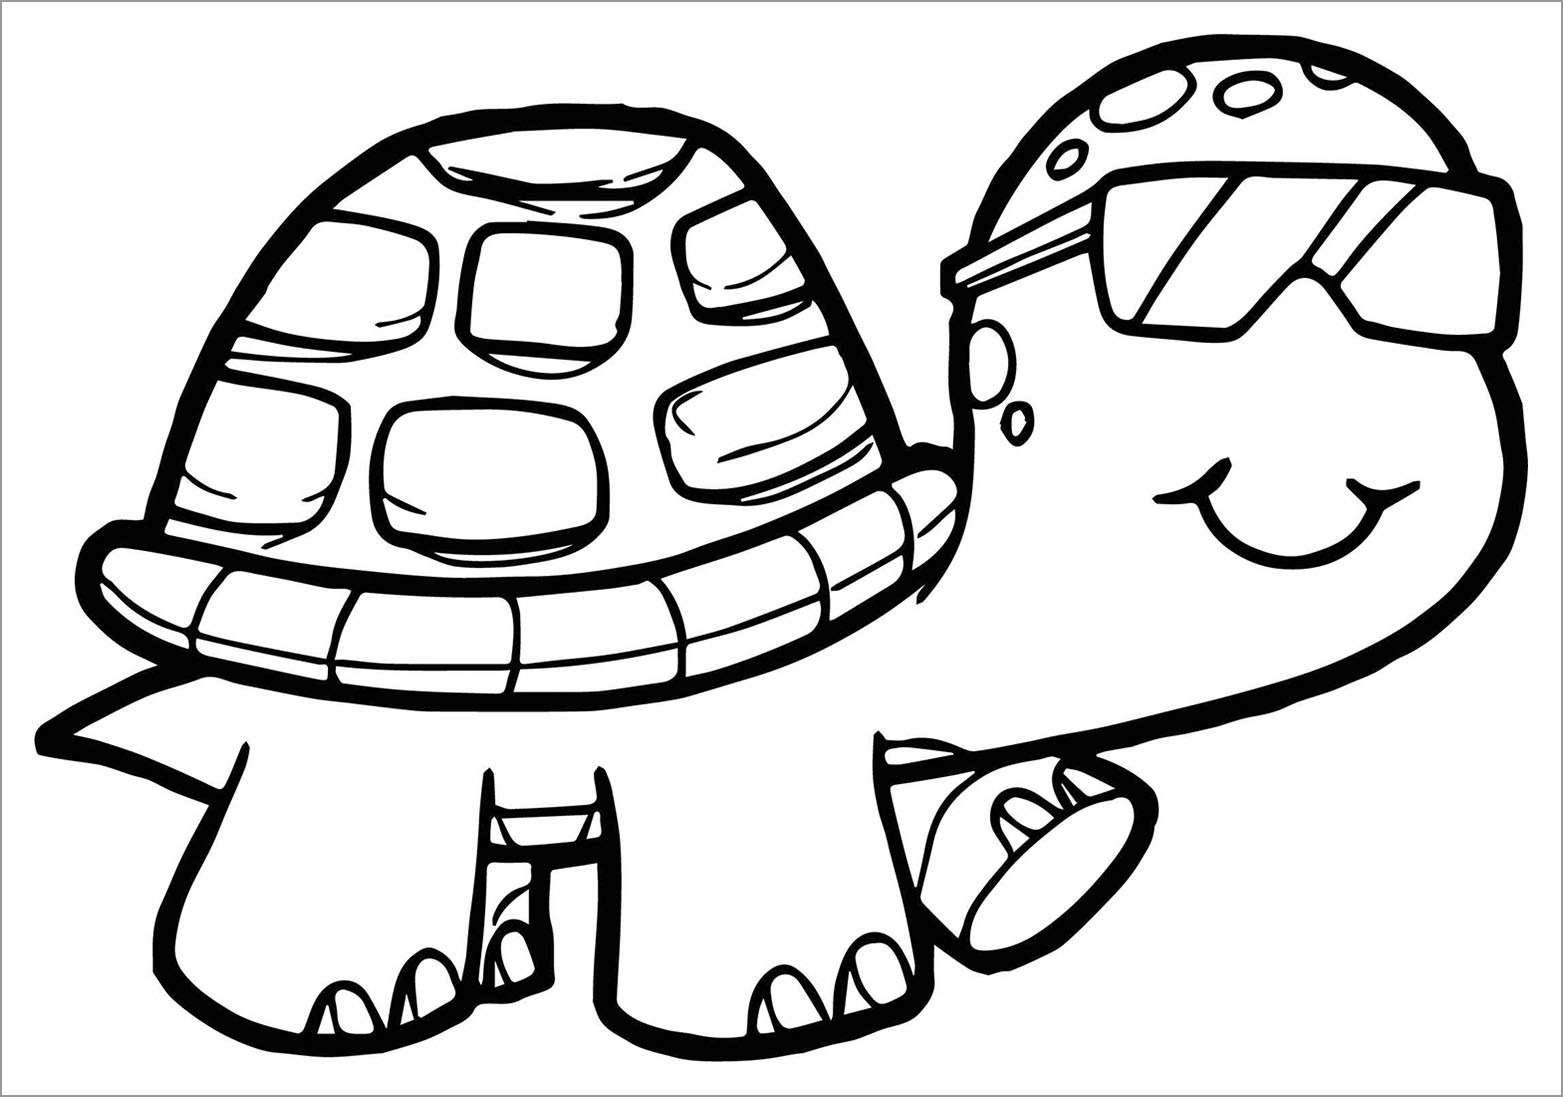 Cool Turtle Coloring Page for Kids